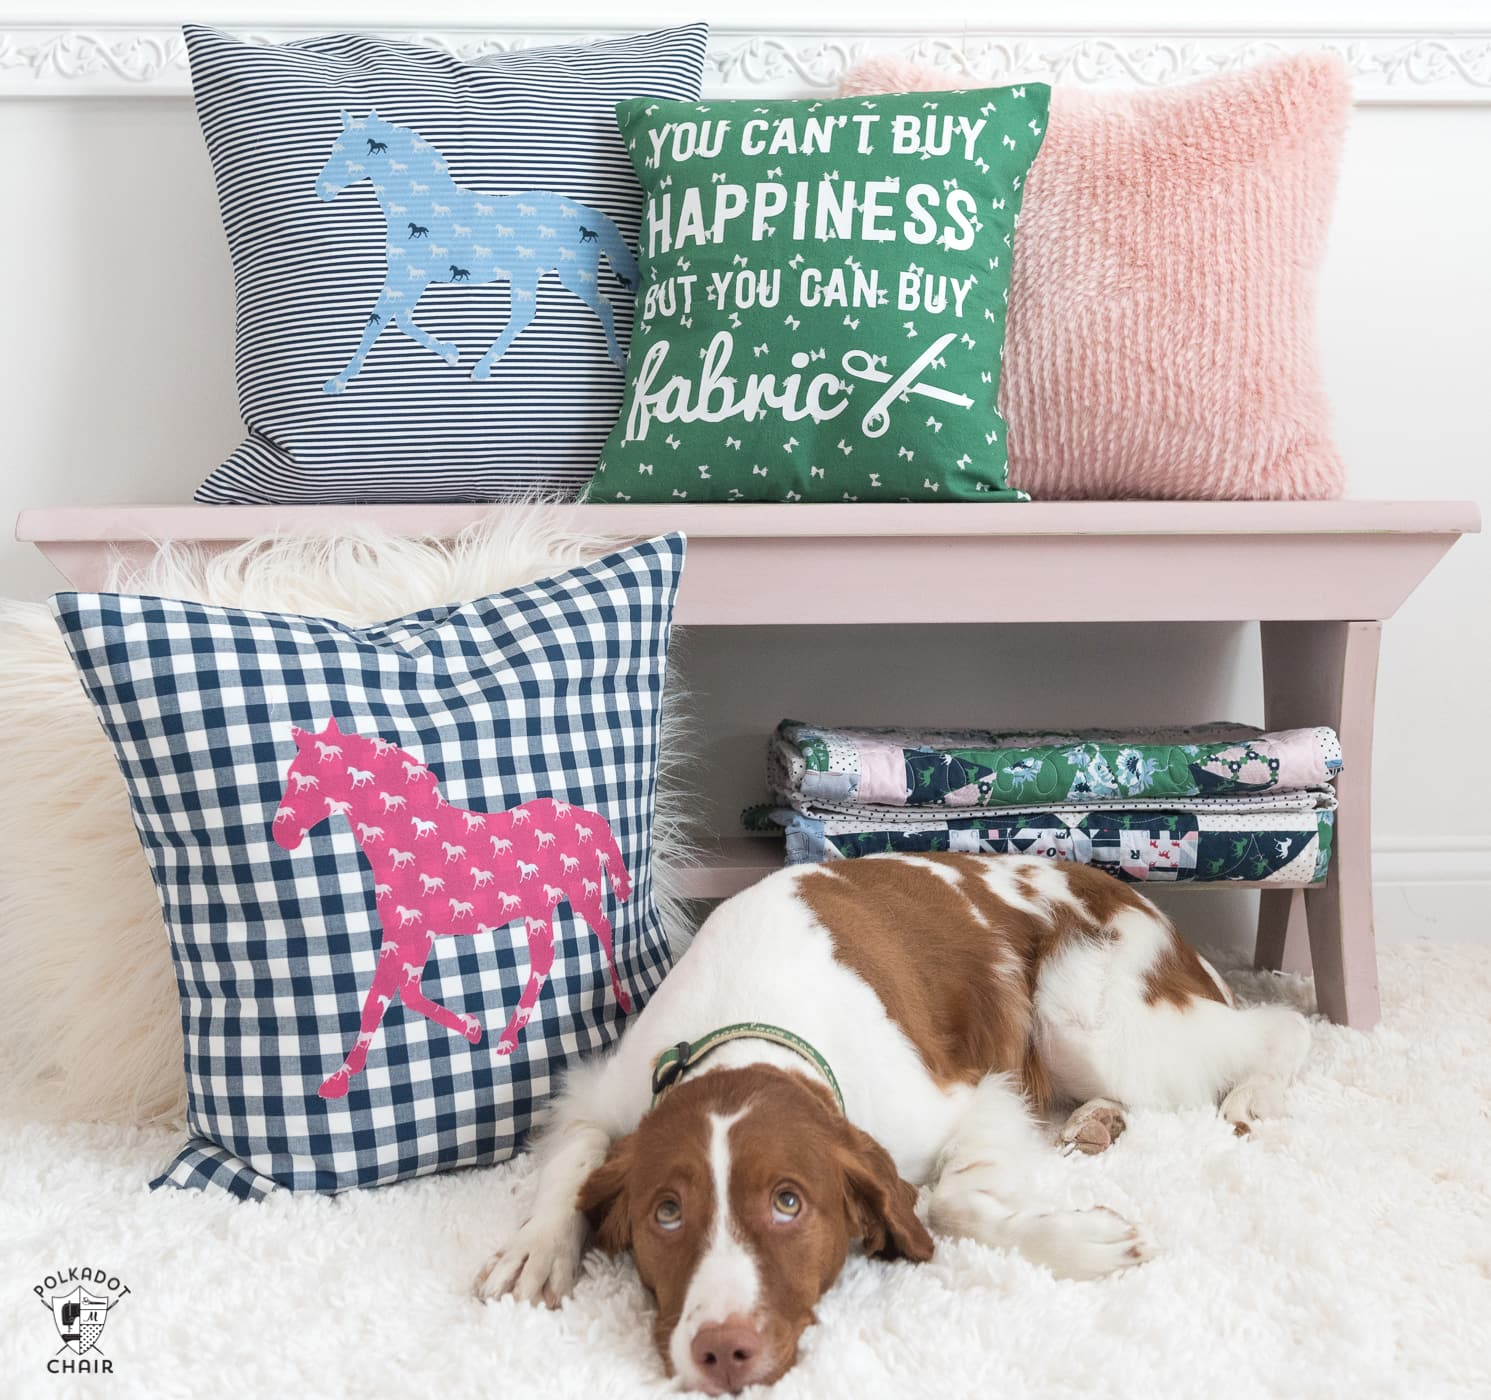 """A DIY Pillow cover that is a great way to spruce up your sewing room decor. Includes a free cricut cut file for the """"fabric happiness"""" saying."""